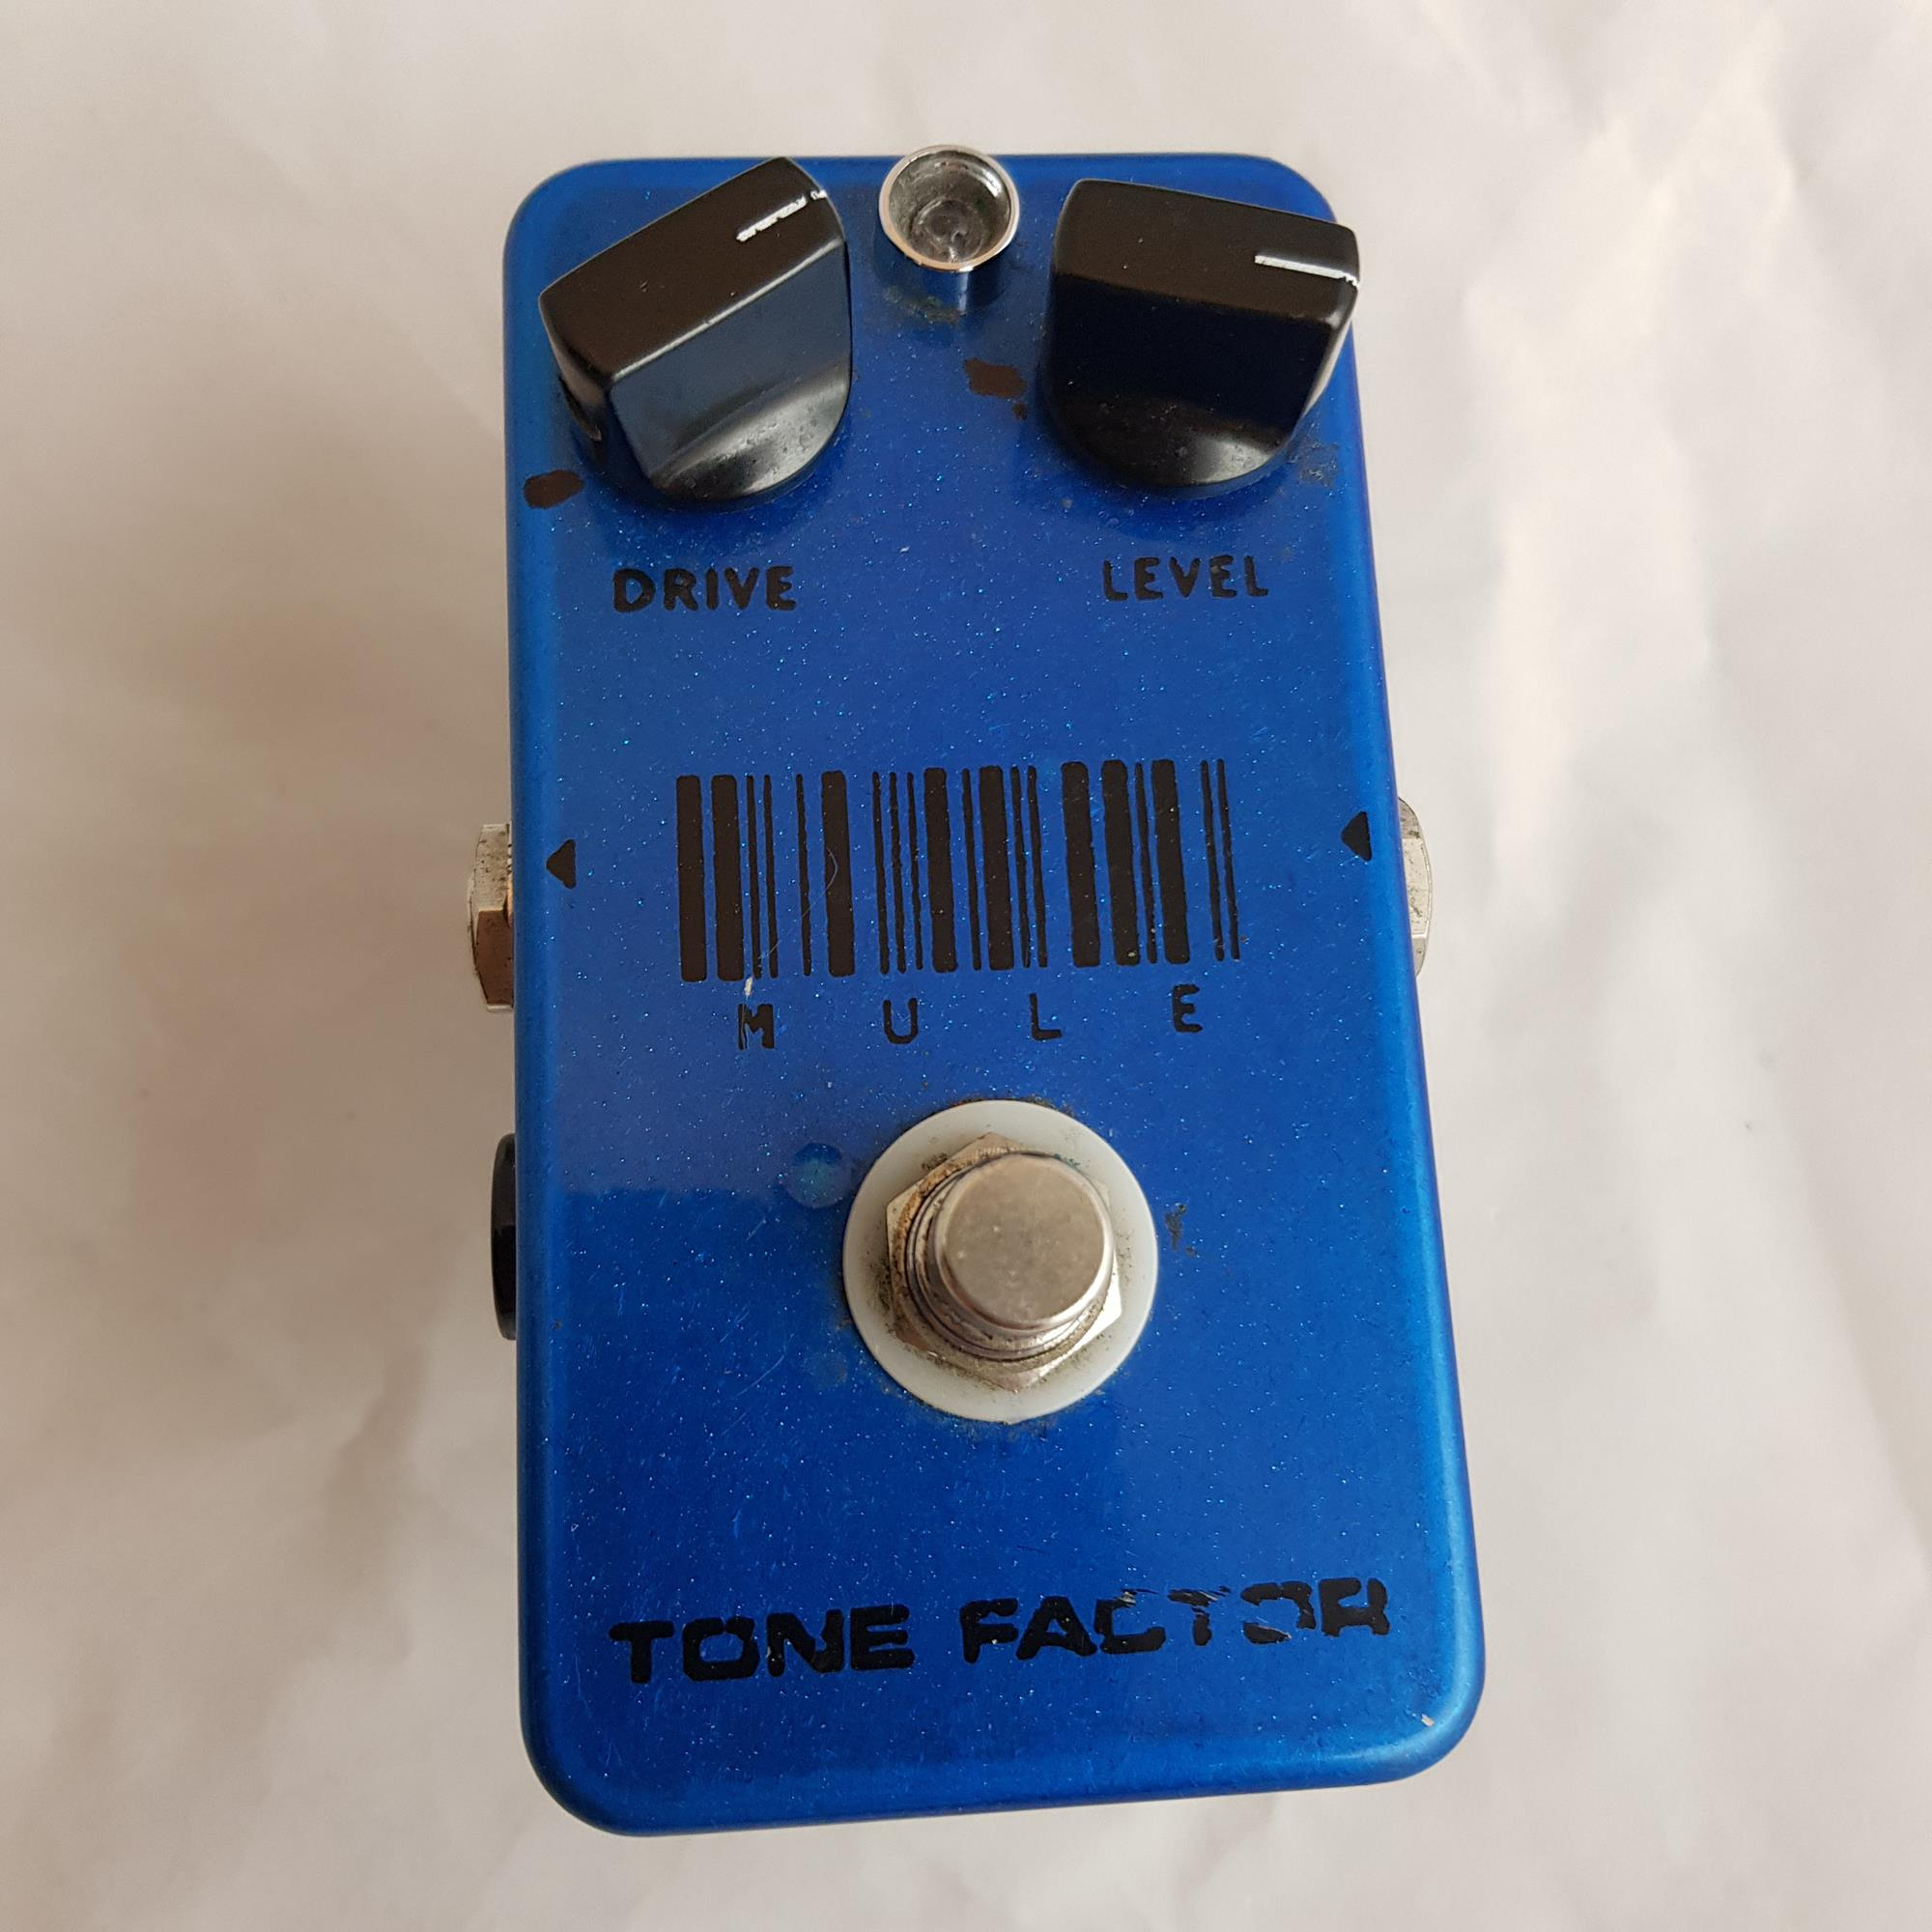 TONE FACTOR MULE DRIVE( RED MAMMAL BASED )